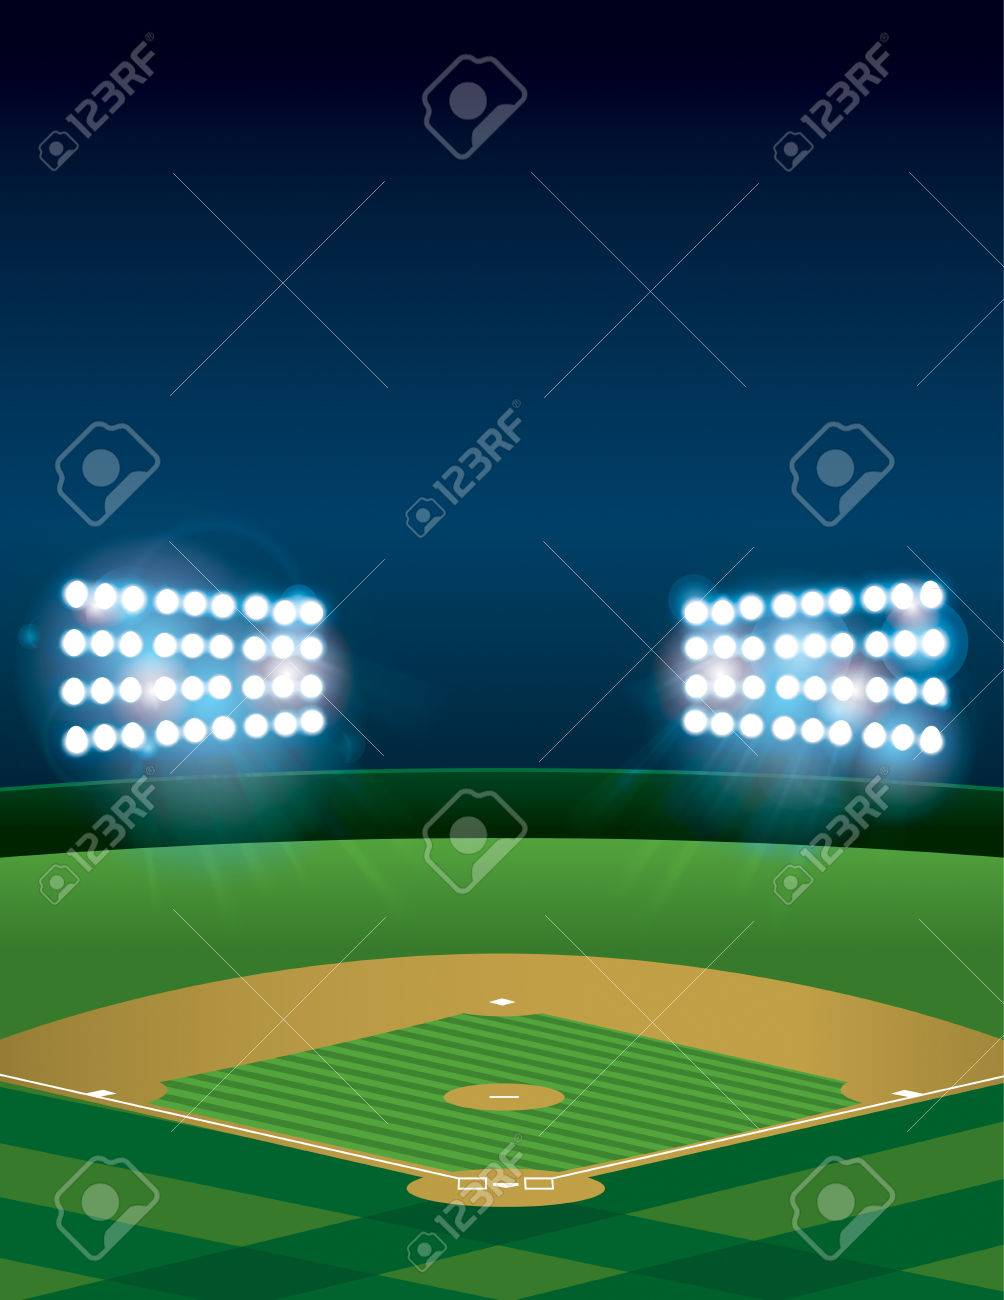 A Lit Baseball Or Softball Field Stadium At Night Vector Available File Contains Transparencies